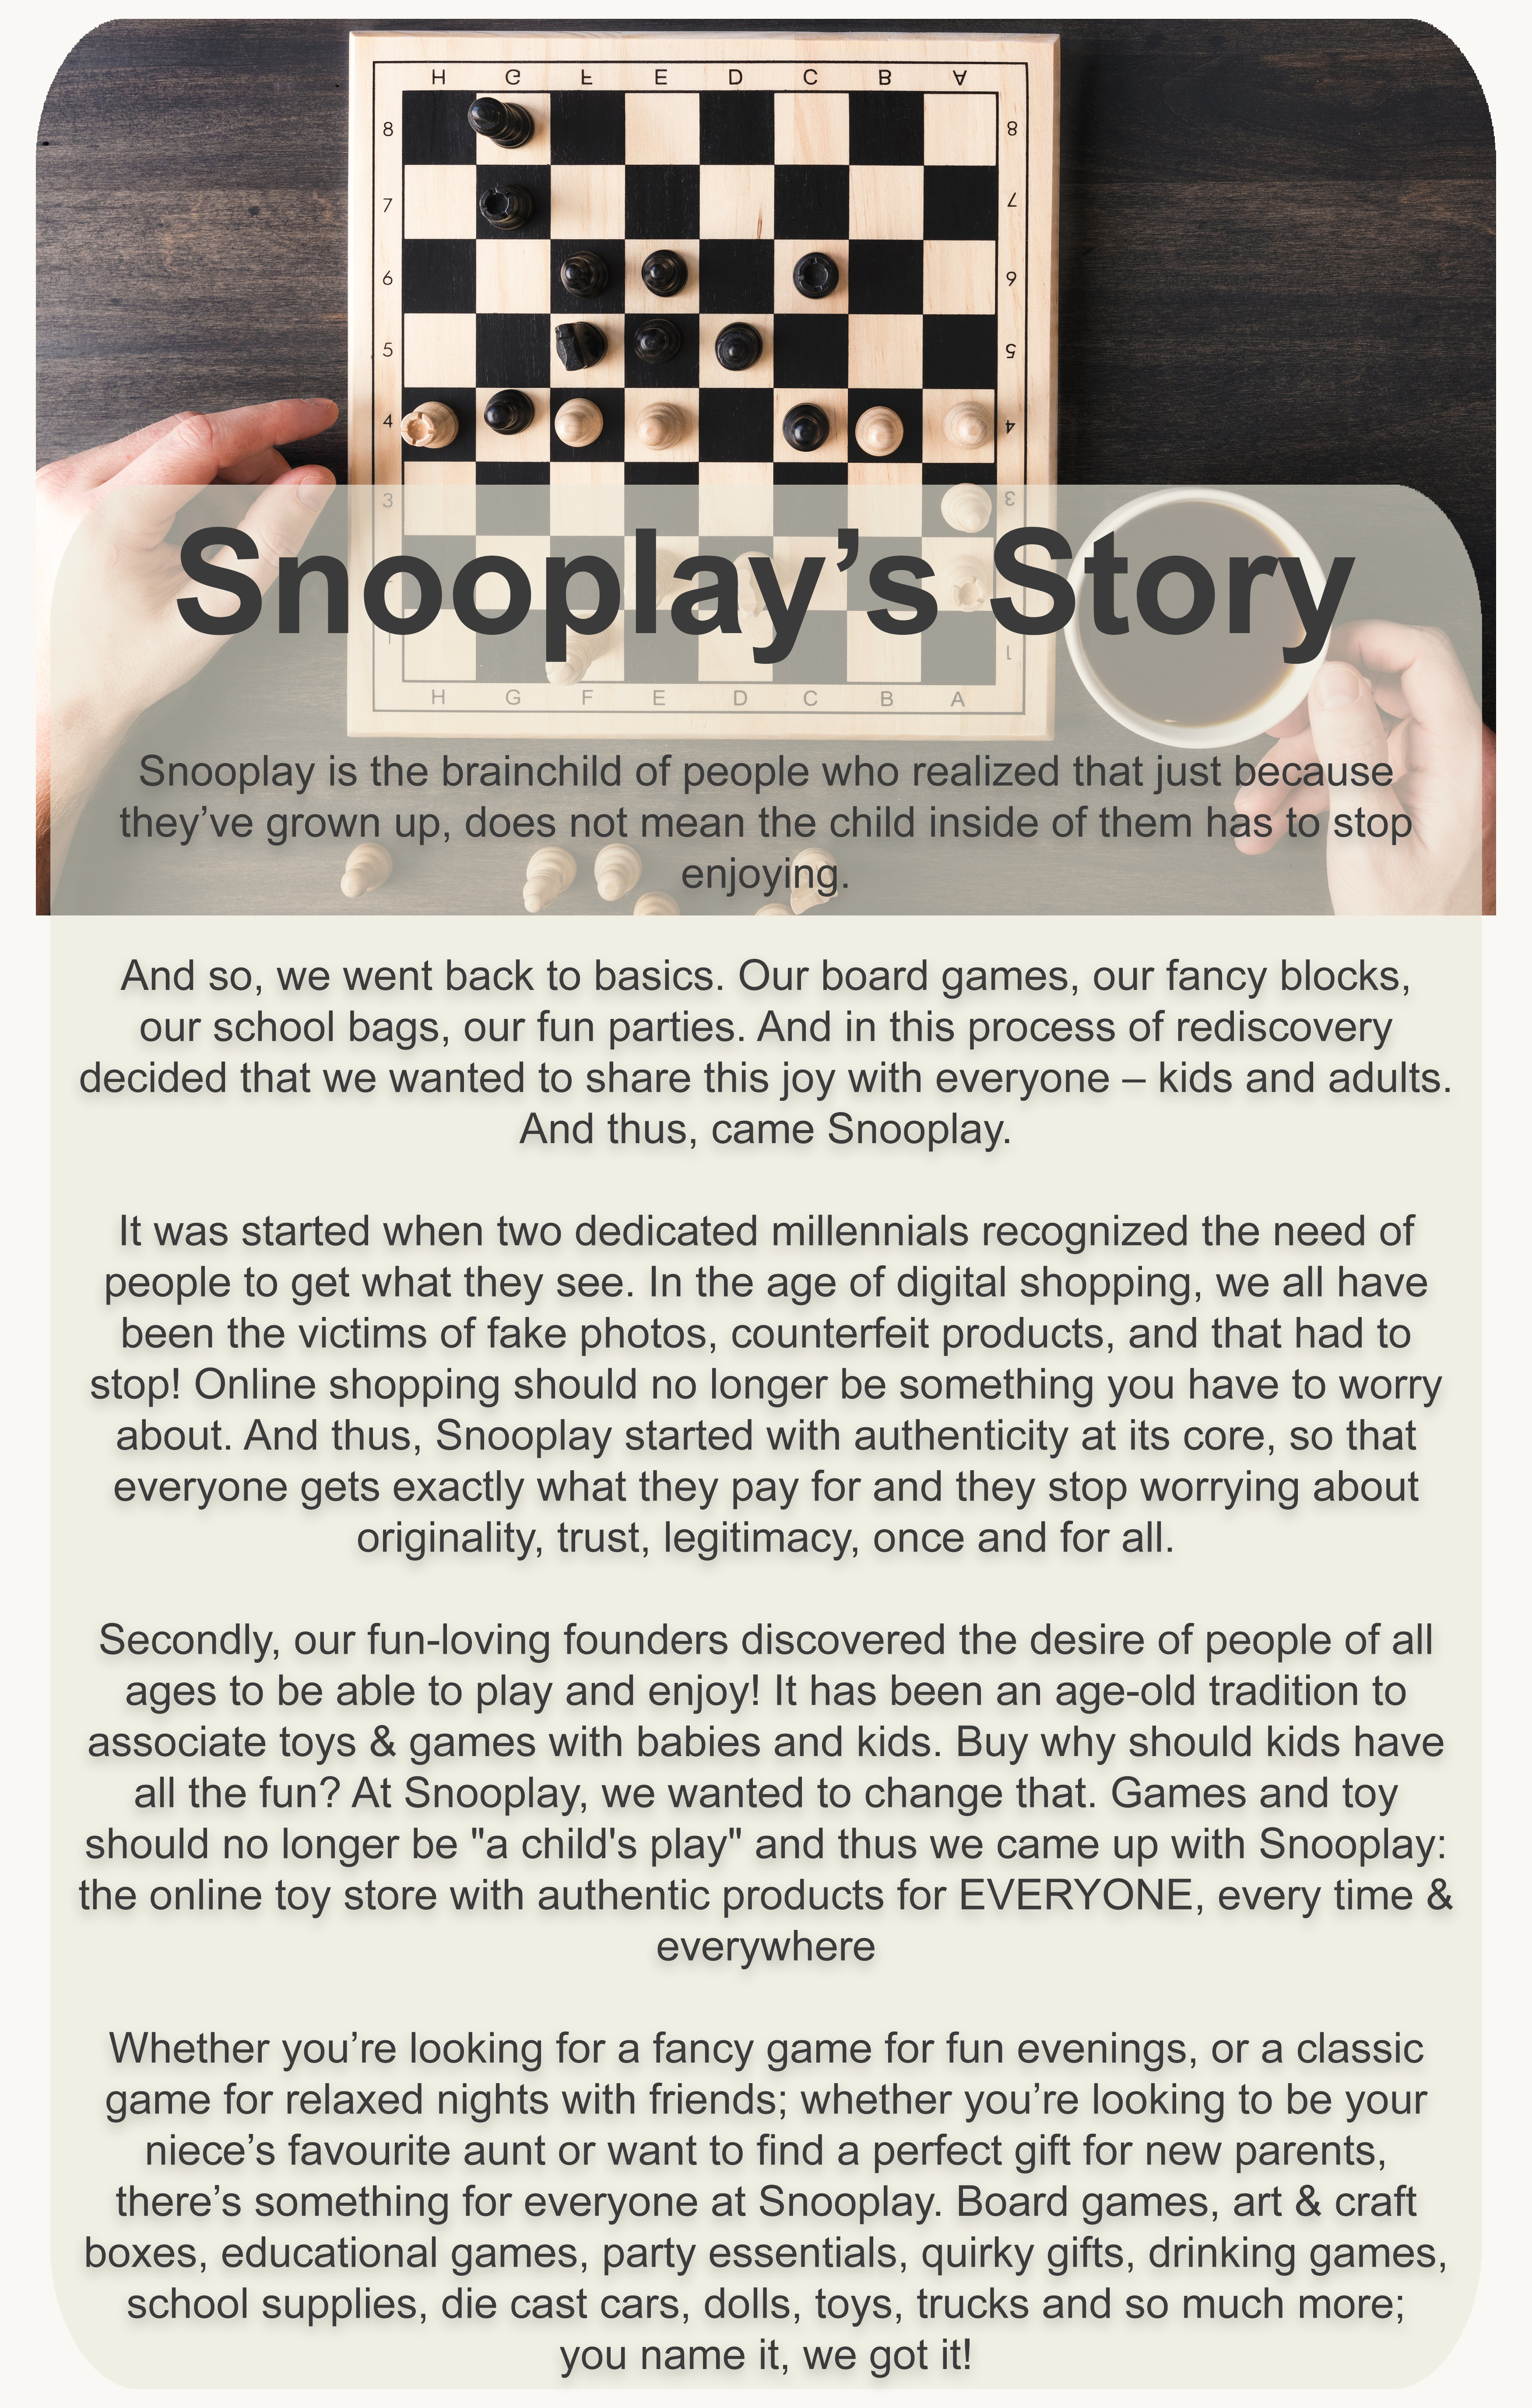 Snooplay's Story